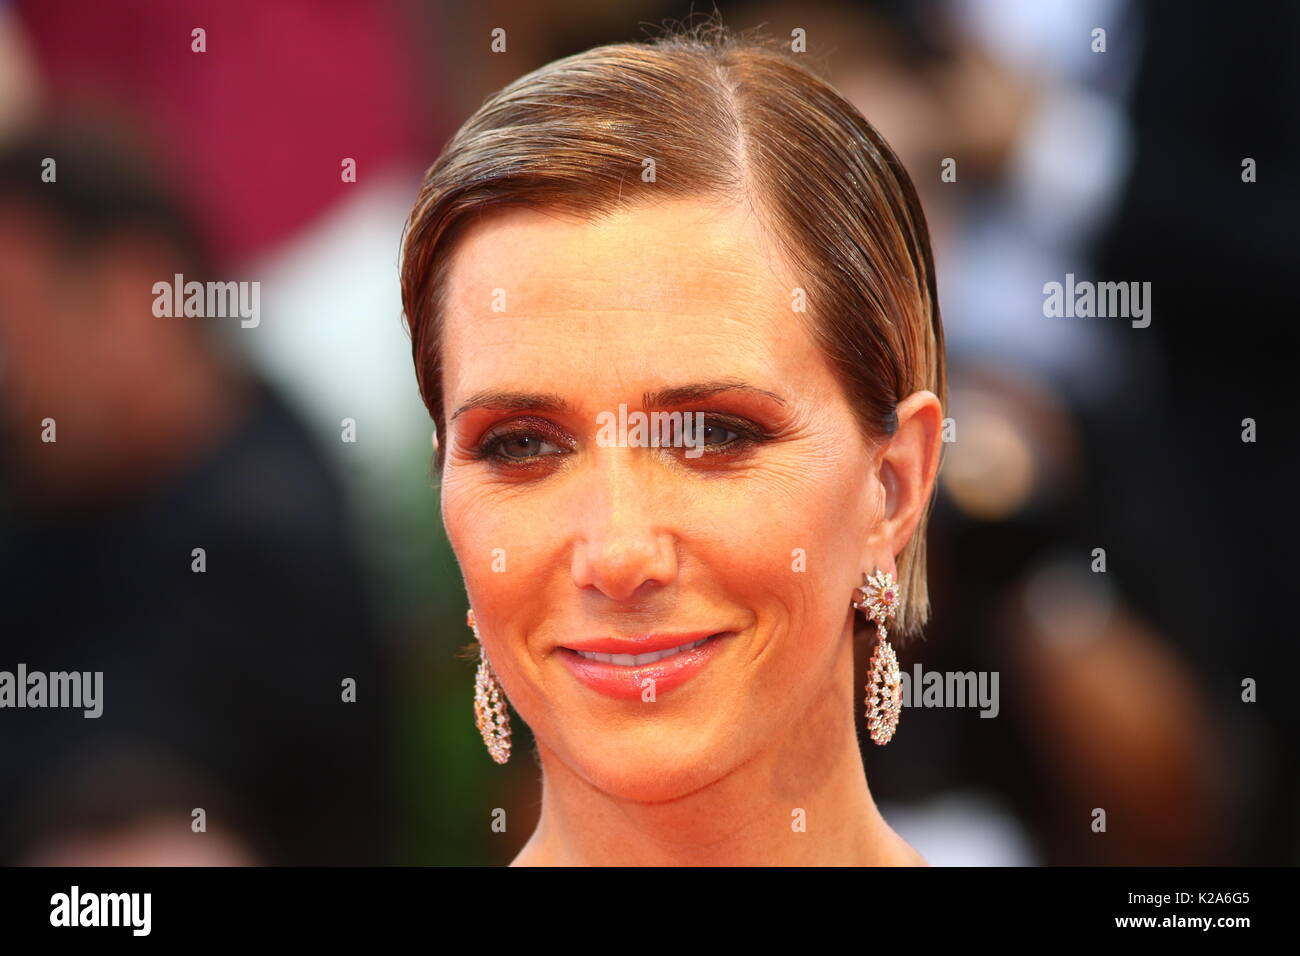 Venice, Italy. 30th Aug, 2017. Kristen Wiig attends the Downsizing Premiere during the 74th Venice International Film Festival at Lido of Venice on 30th August, 2017. Credit: Andrea Spinelli/Alamy Live News - Stock Image